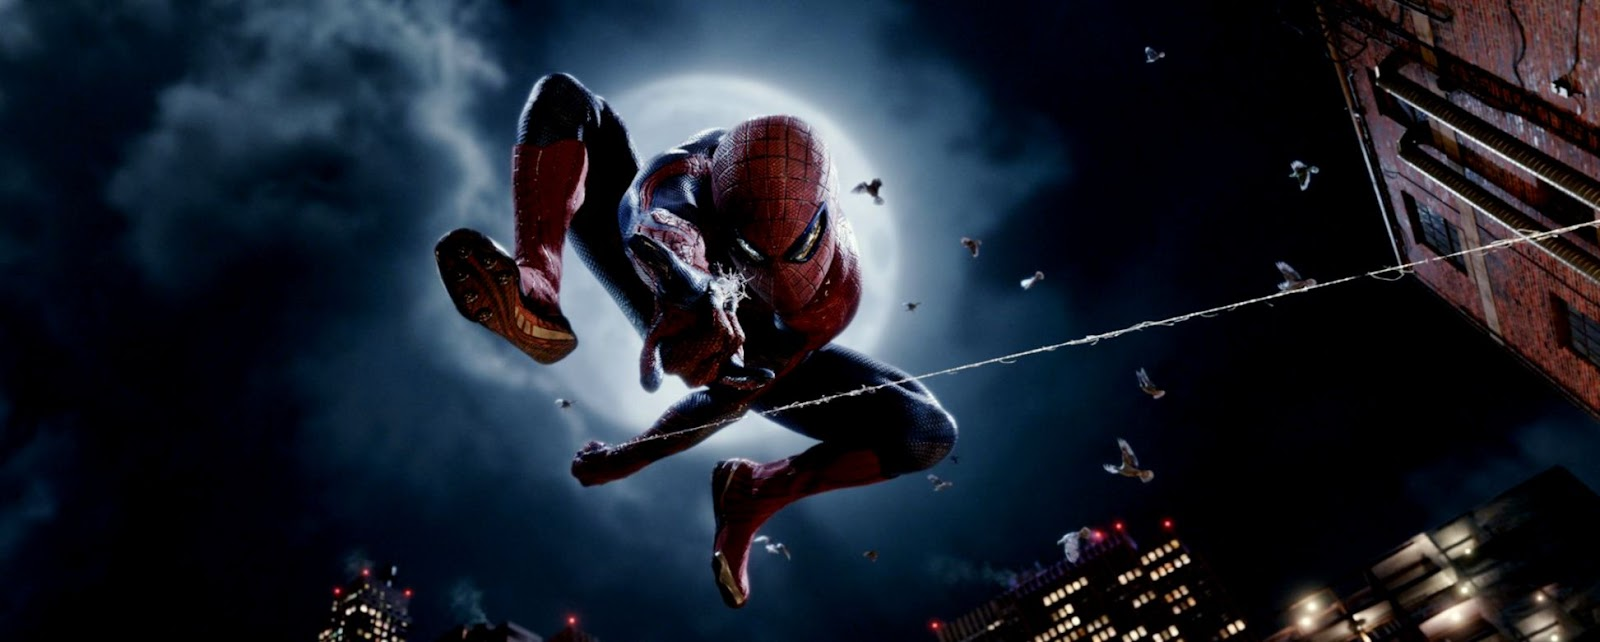 The Amazing Spider Man 2 Latest Hd Wallpapers Free Download